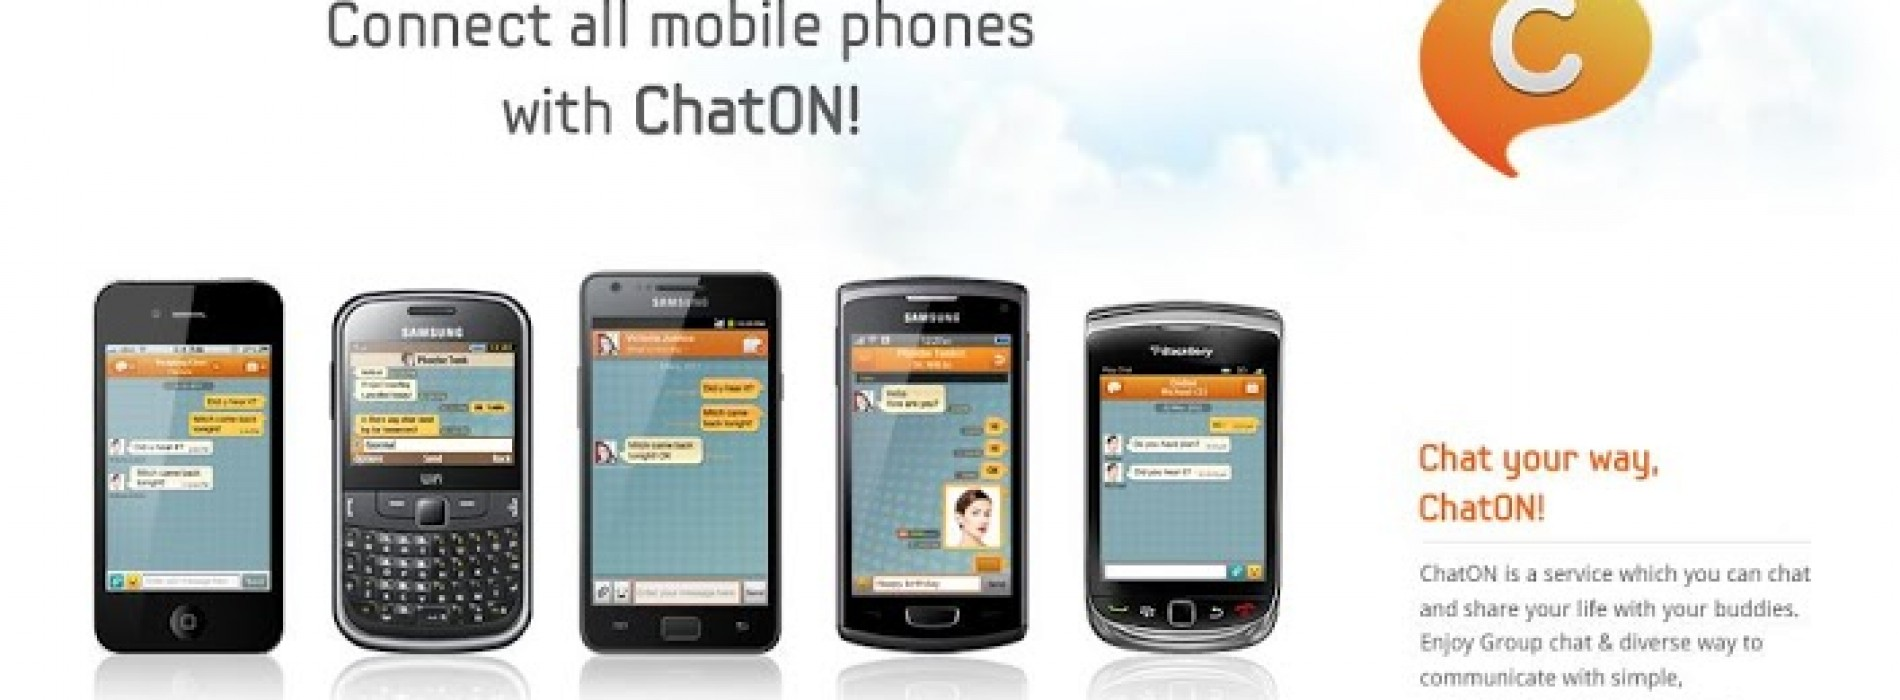 Samsung ChatON app gets host of new features in latest update